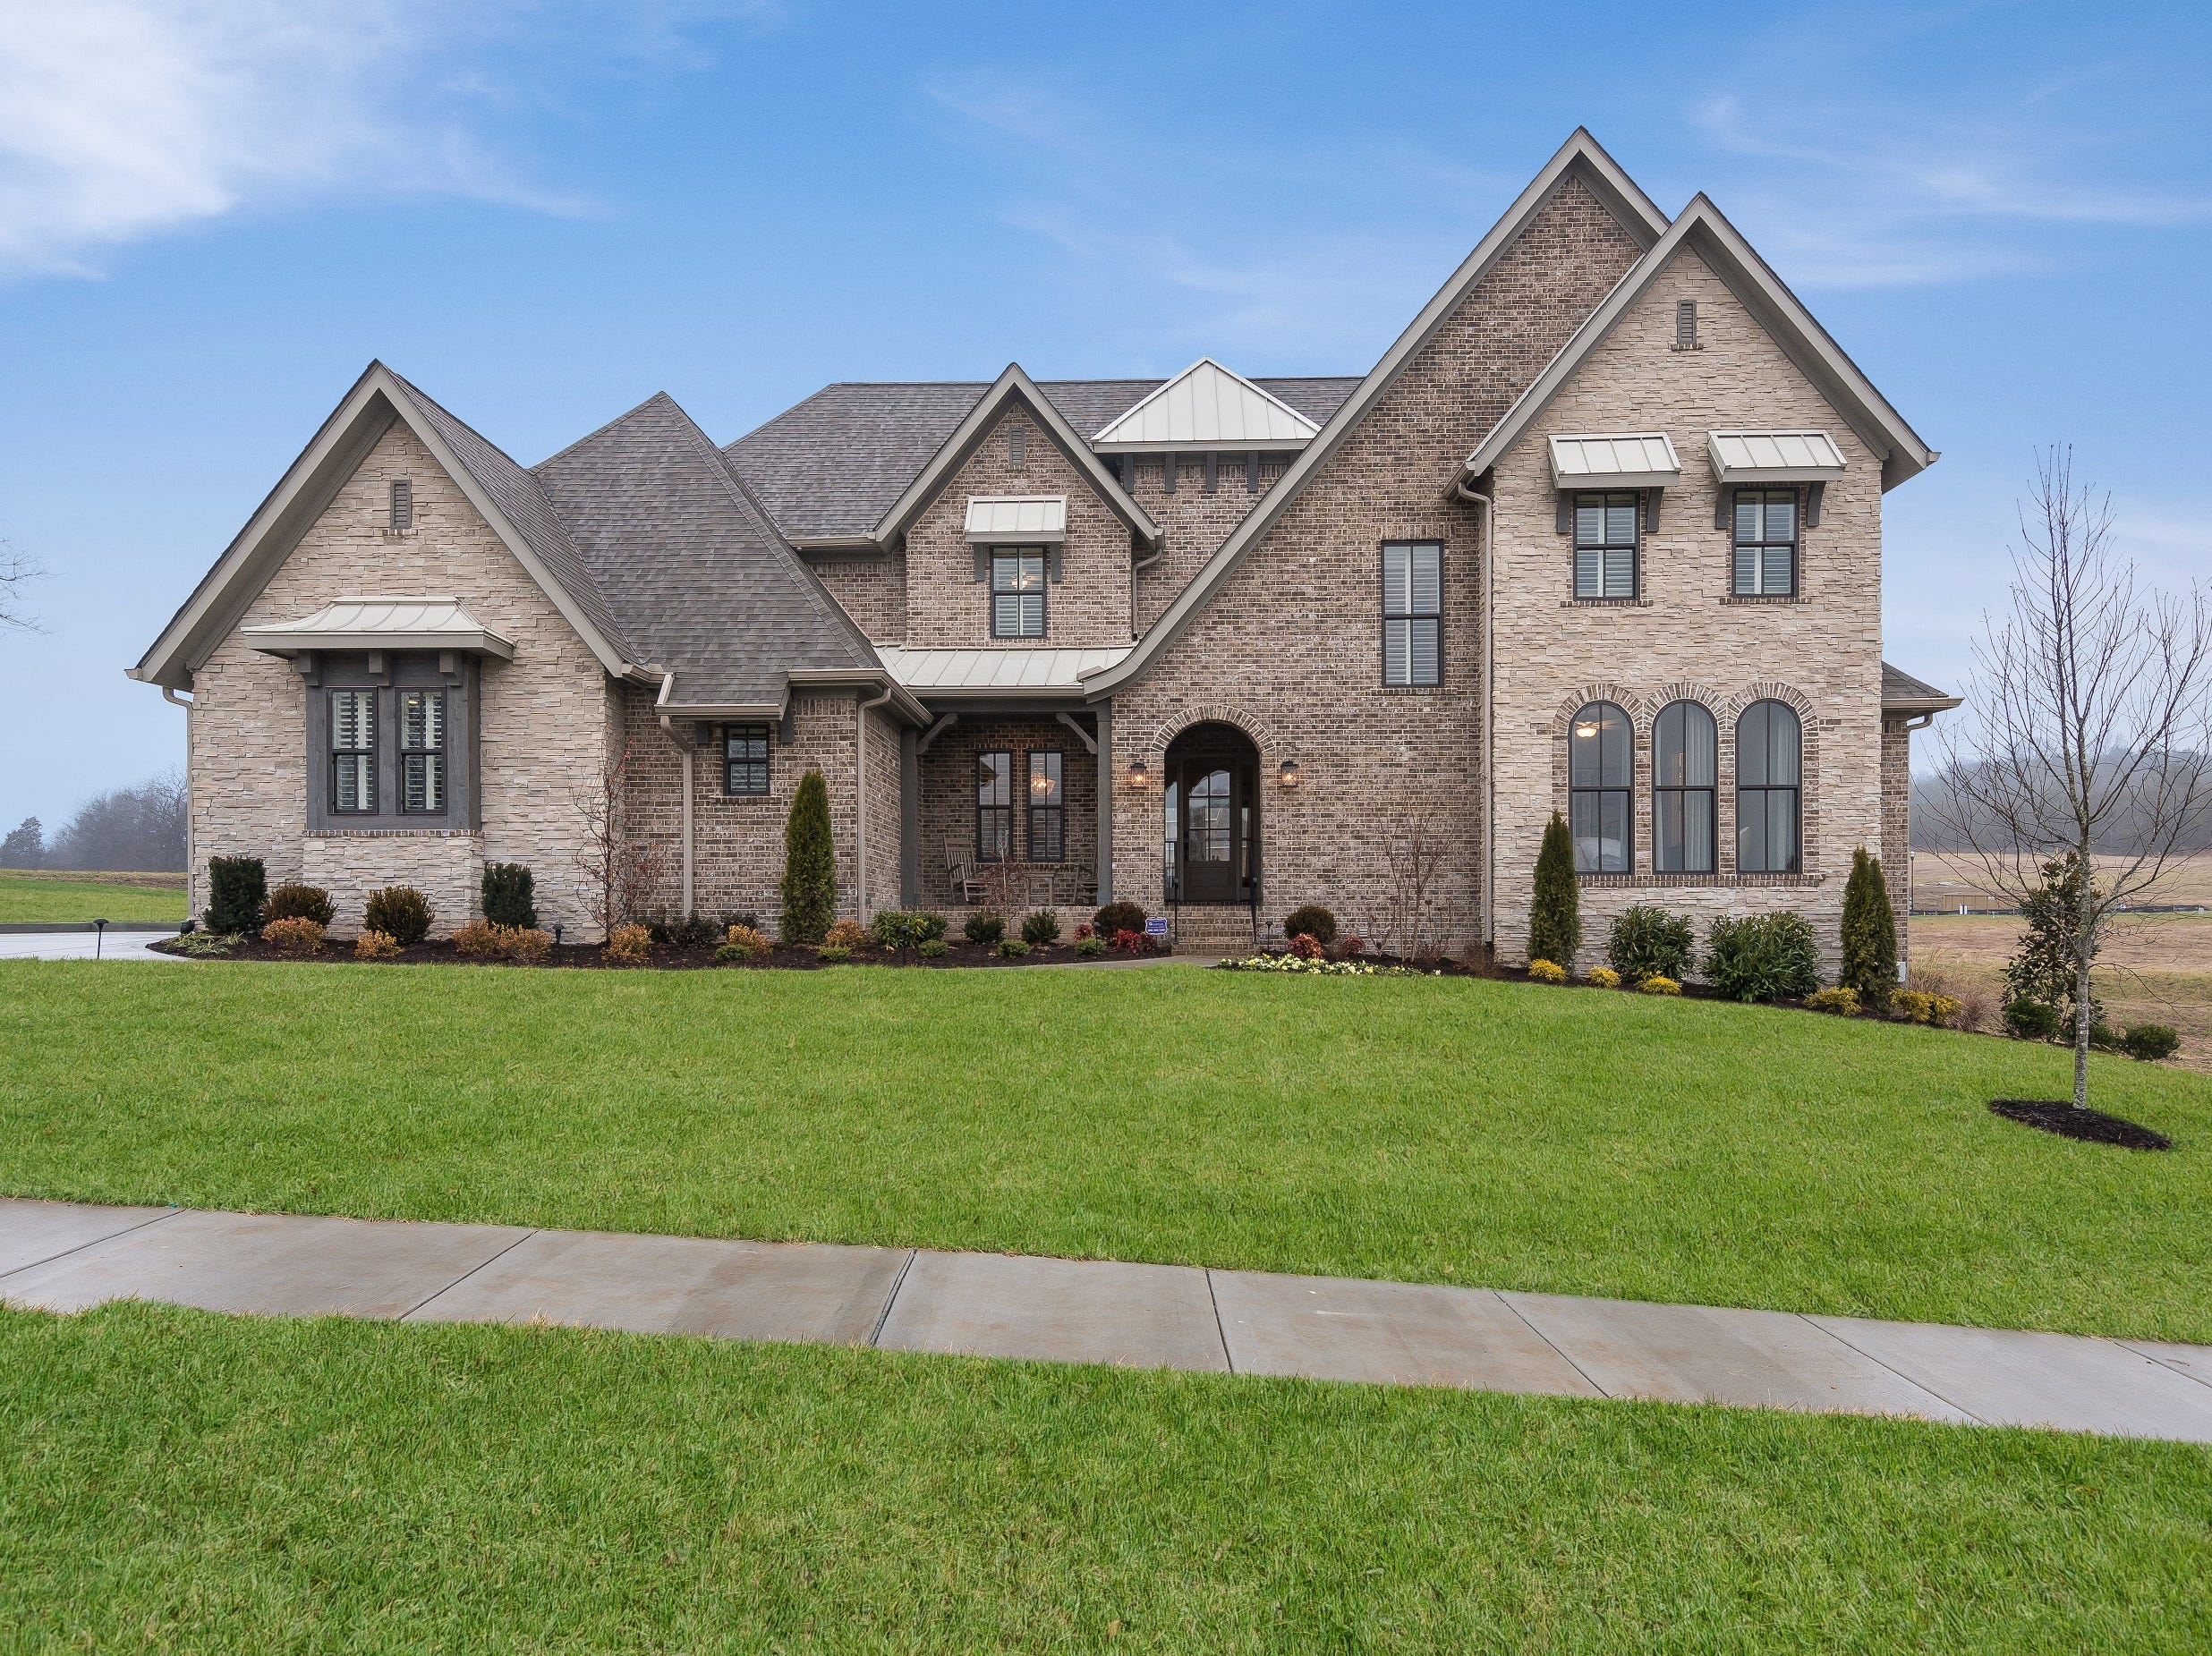 The home at 6003 Lookaway Circle is the Lookaway Farms model home. It is currently listed for sale.